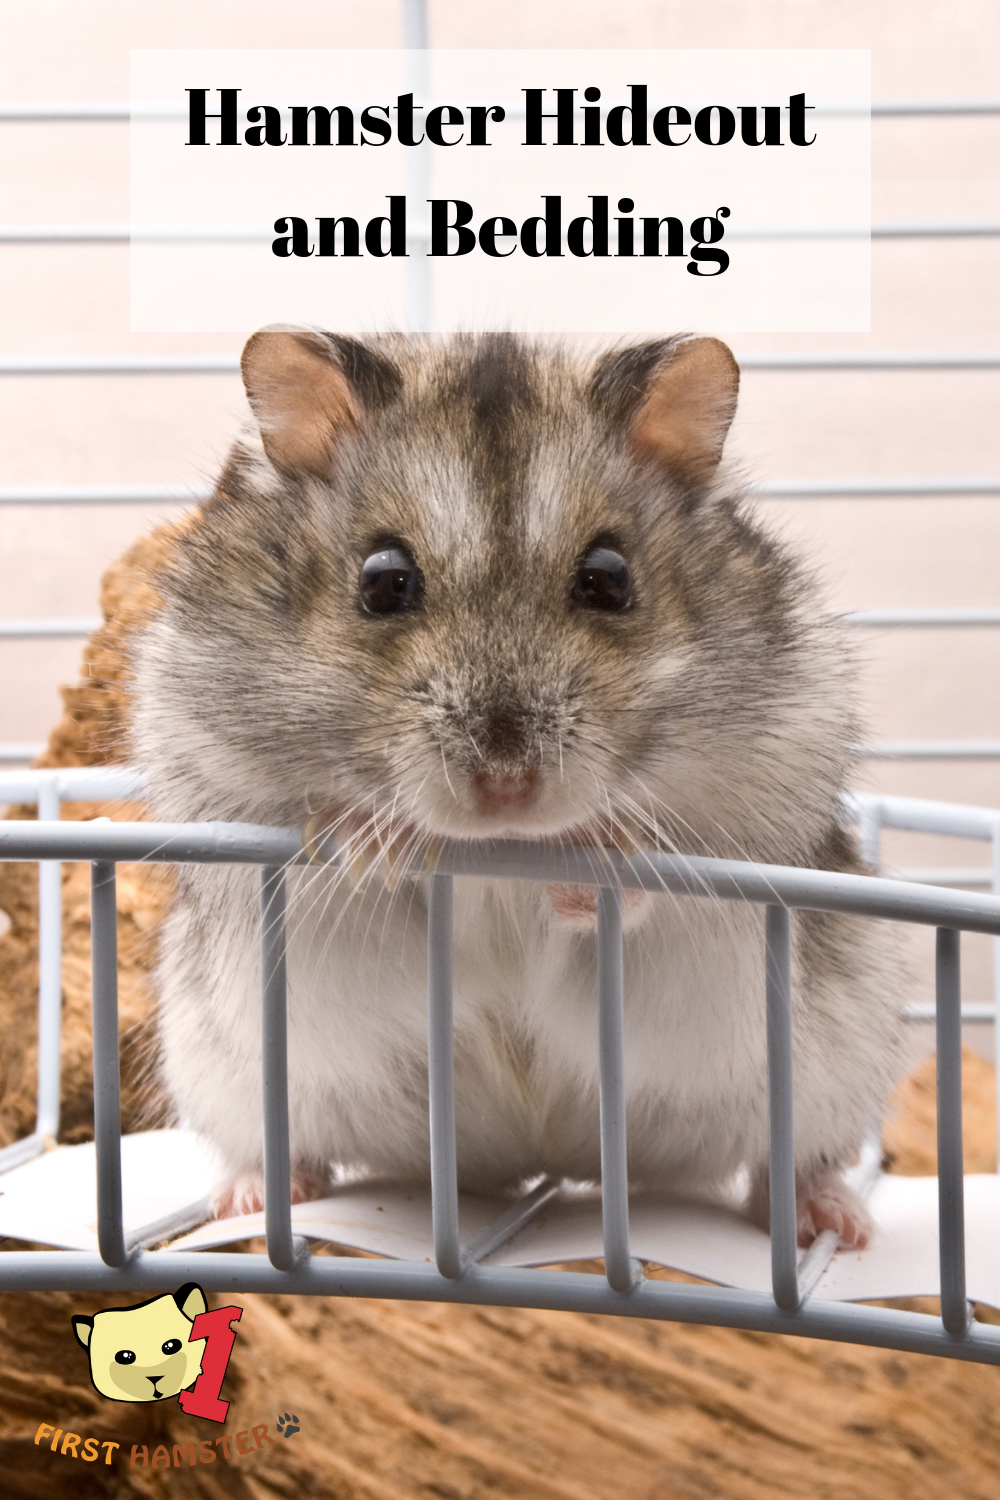 Hamster Hideout and Bedding Hamster care, Hamster